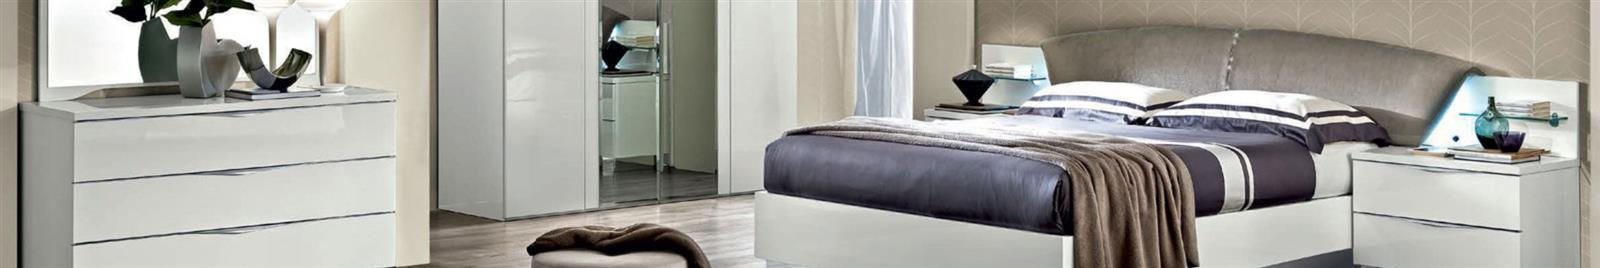 Onda Night Range - Italian Bedroom Furniture